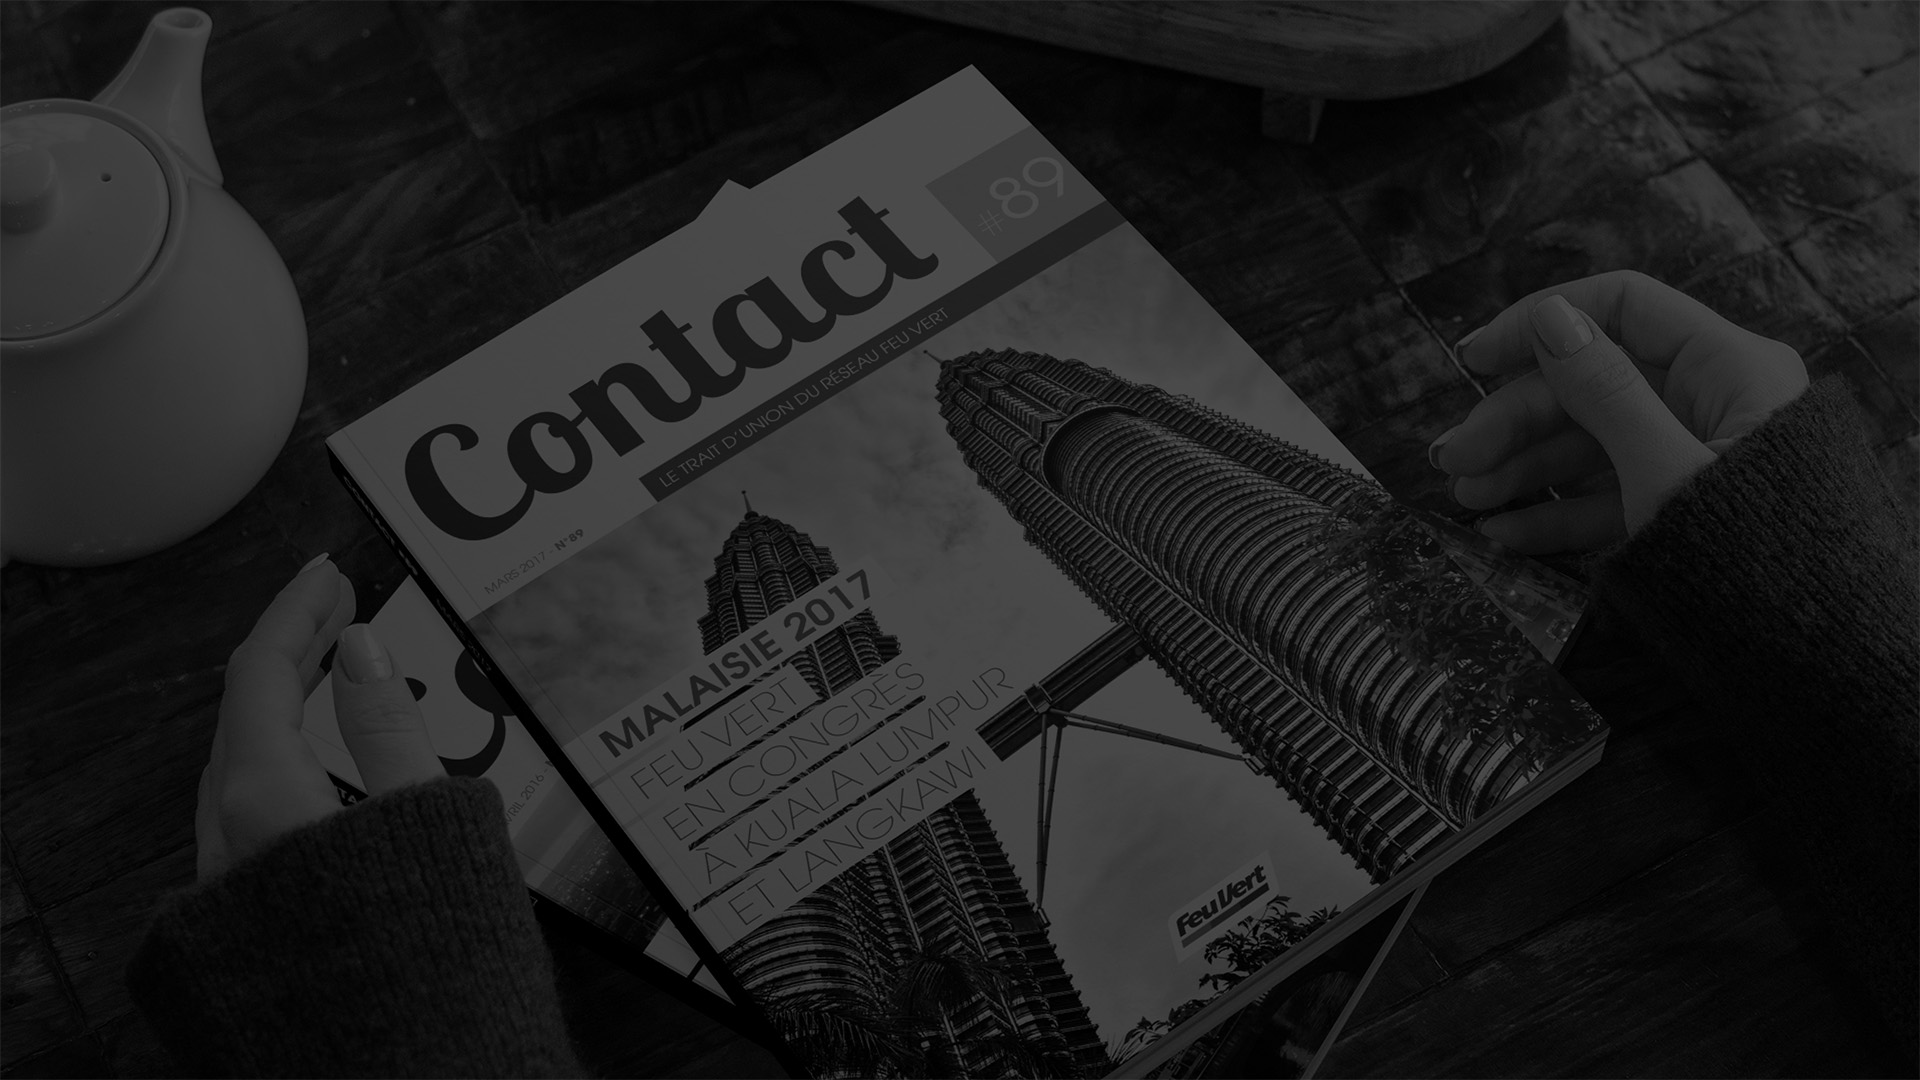 Contact, magazine interne, communication interne